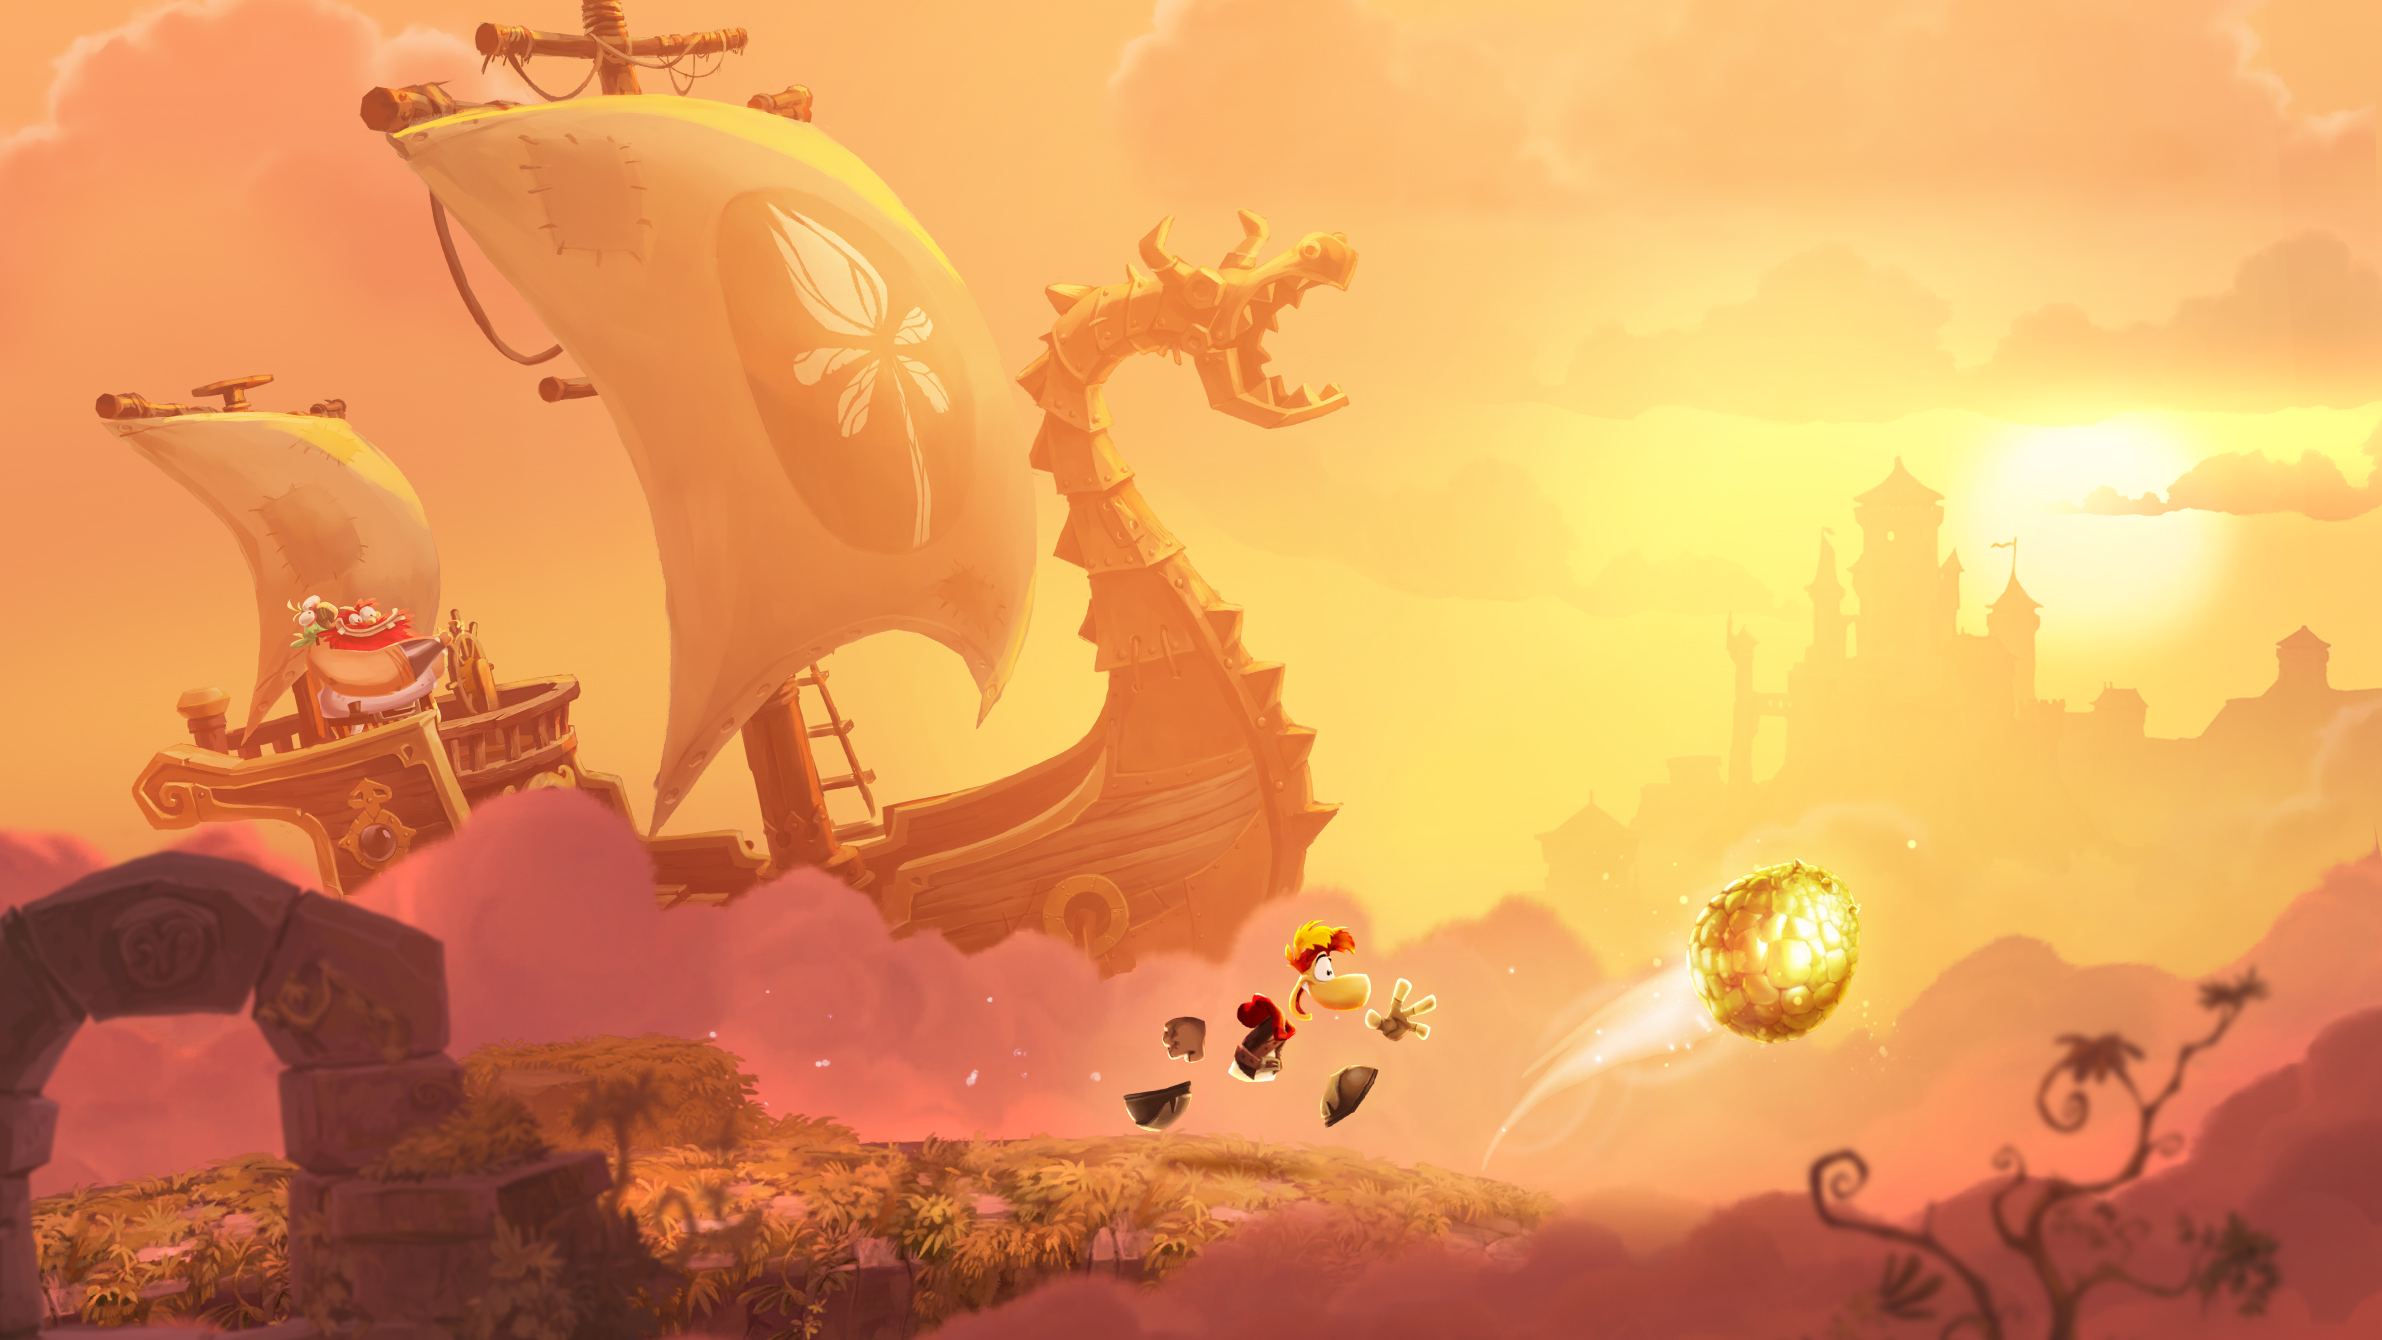 Epic adventures wait for Rayman.